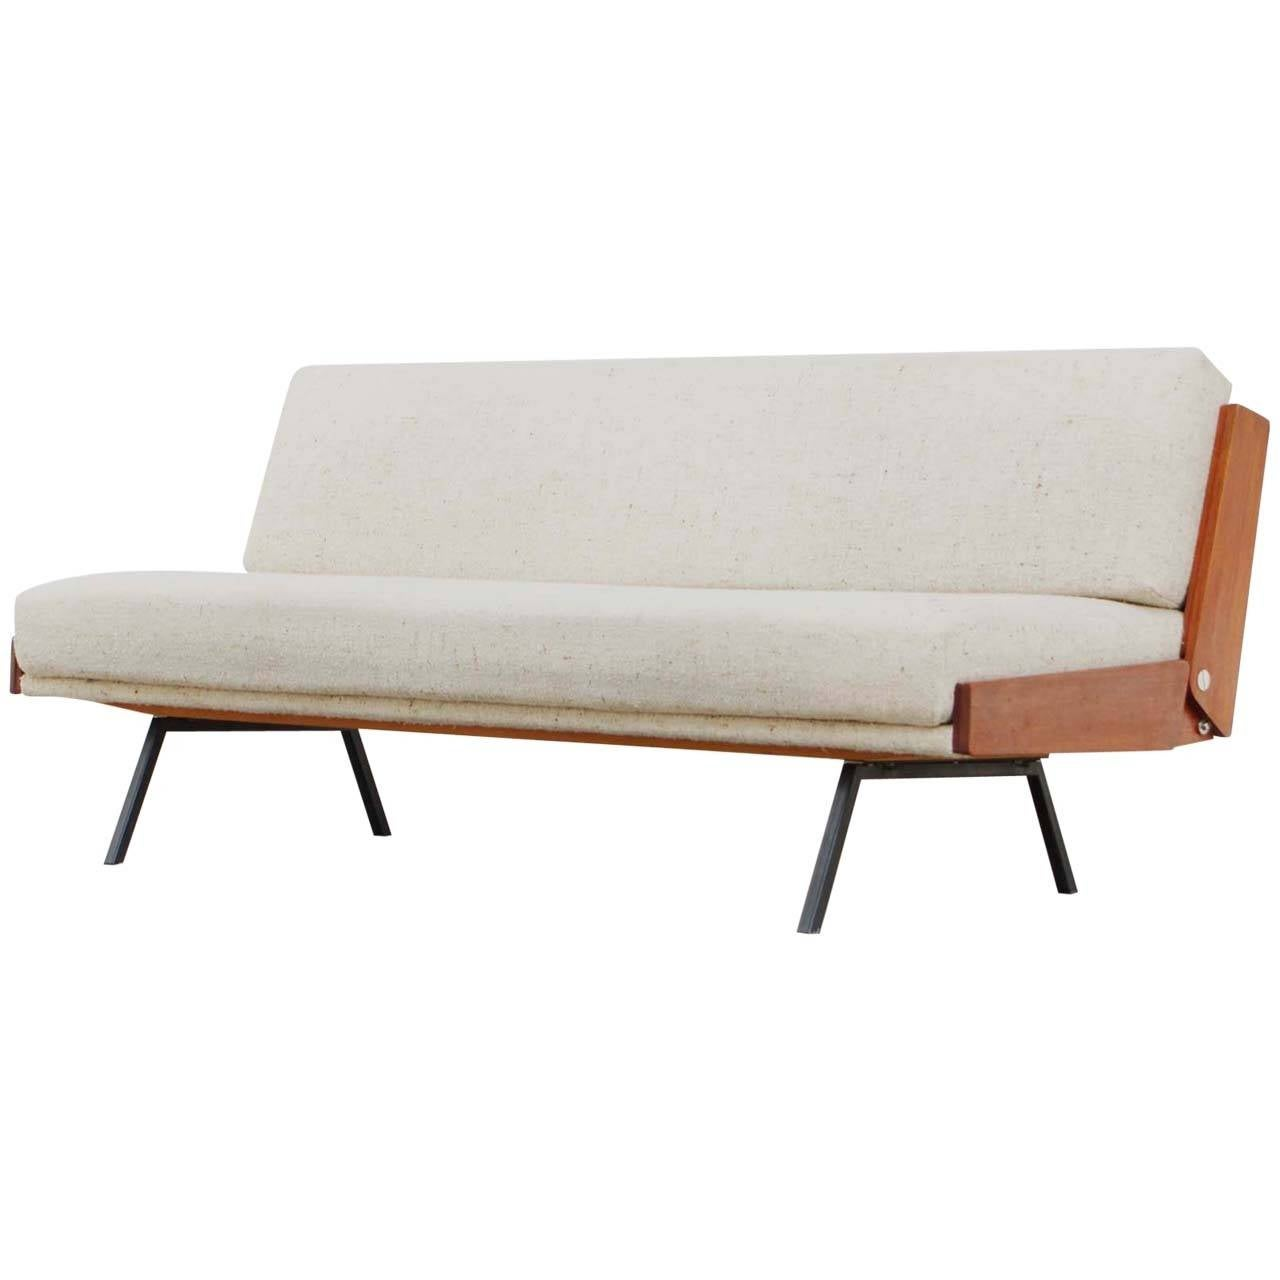 Teal Sofa Daybed by Bert Liebert Wilhelm for Knoll, Mid-Century ...